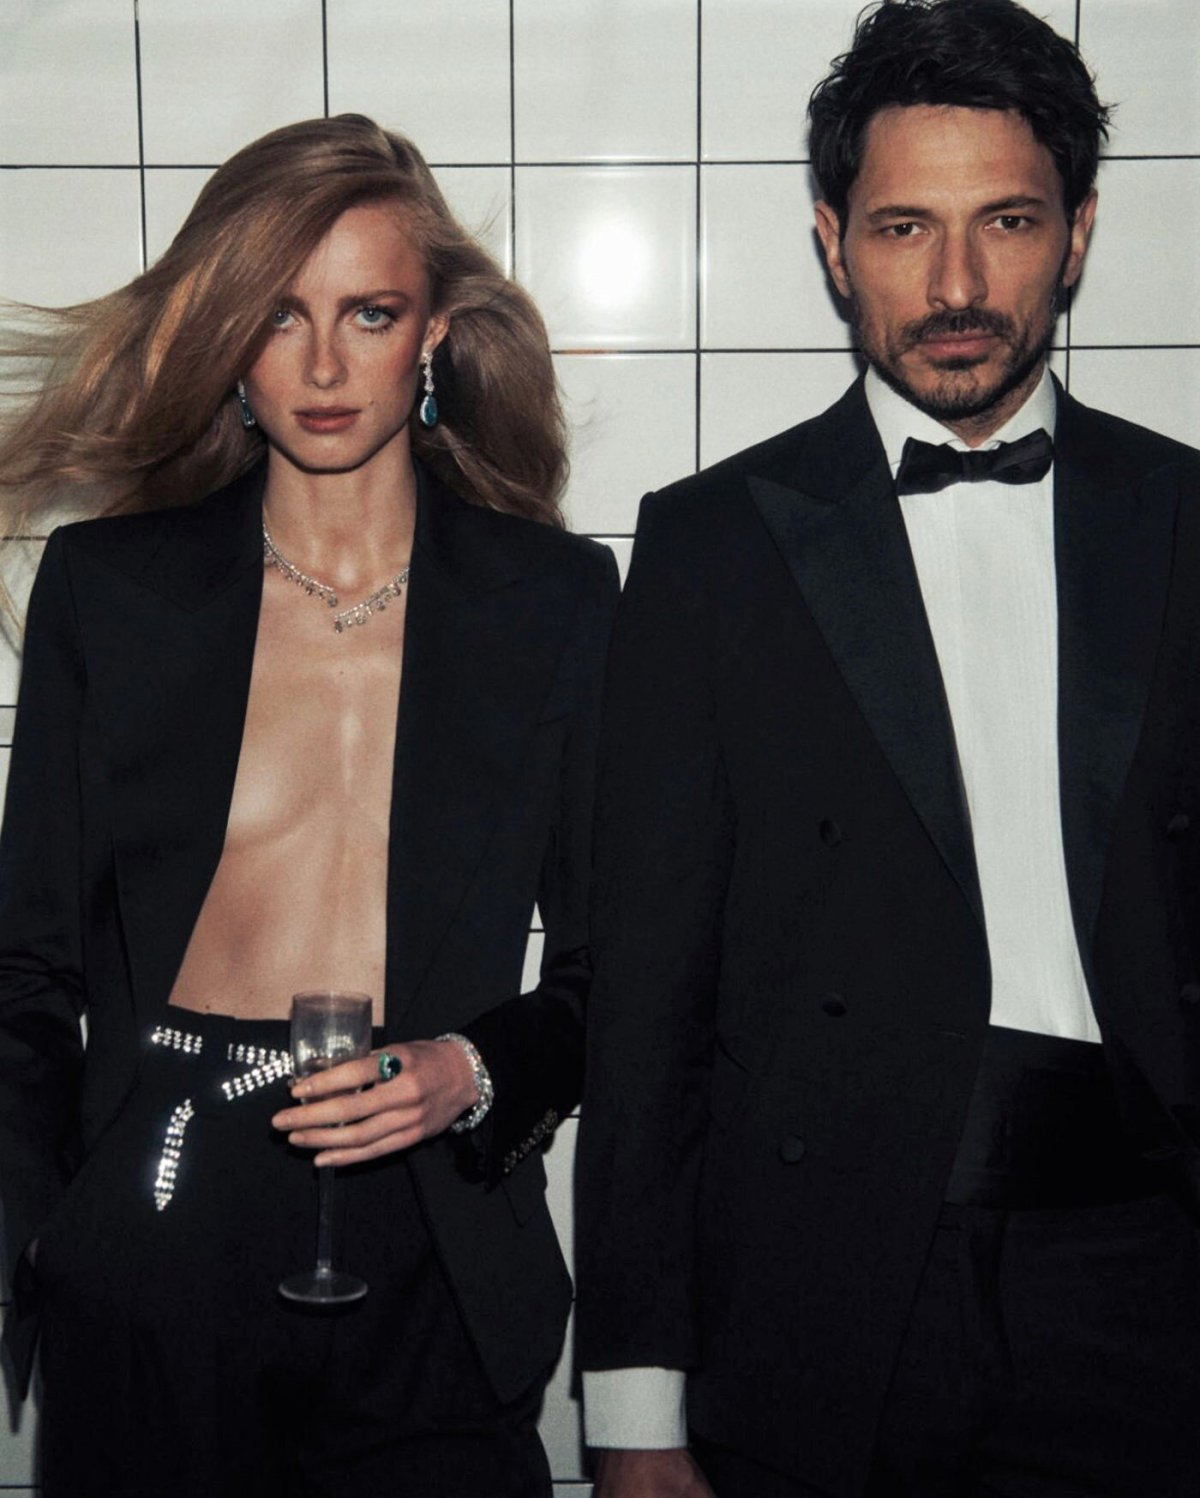 Rianne Van Rompaey and Andrés Velencoso Segura Vogue Paris June/July 2021 Issue. Photographed by Lachlan Bailey and styled by Emmanuelle Alt.